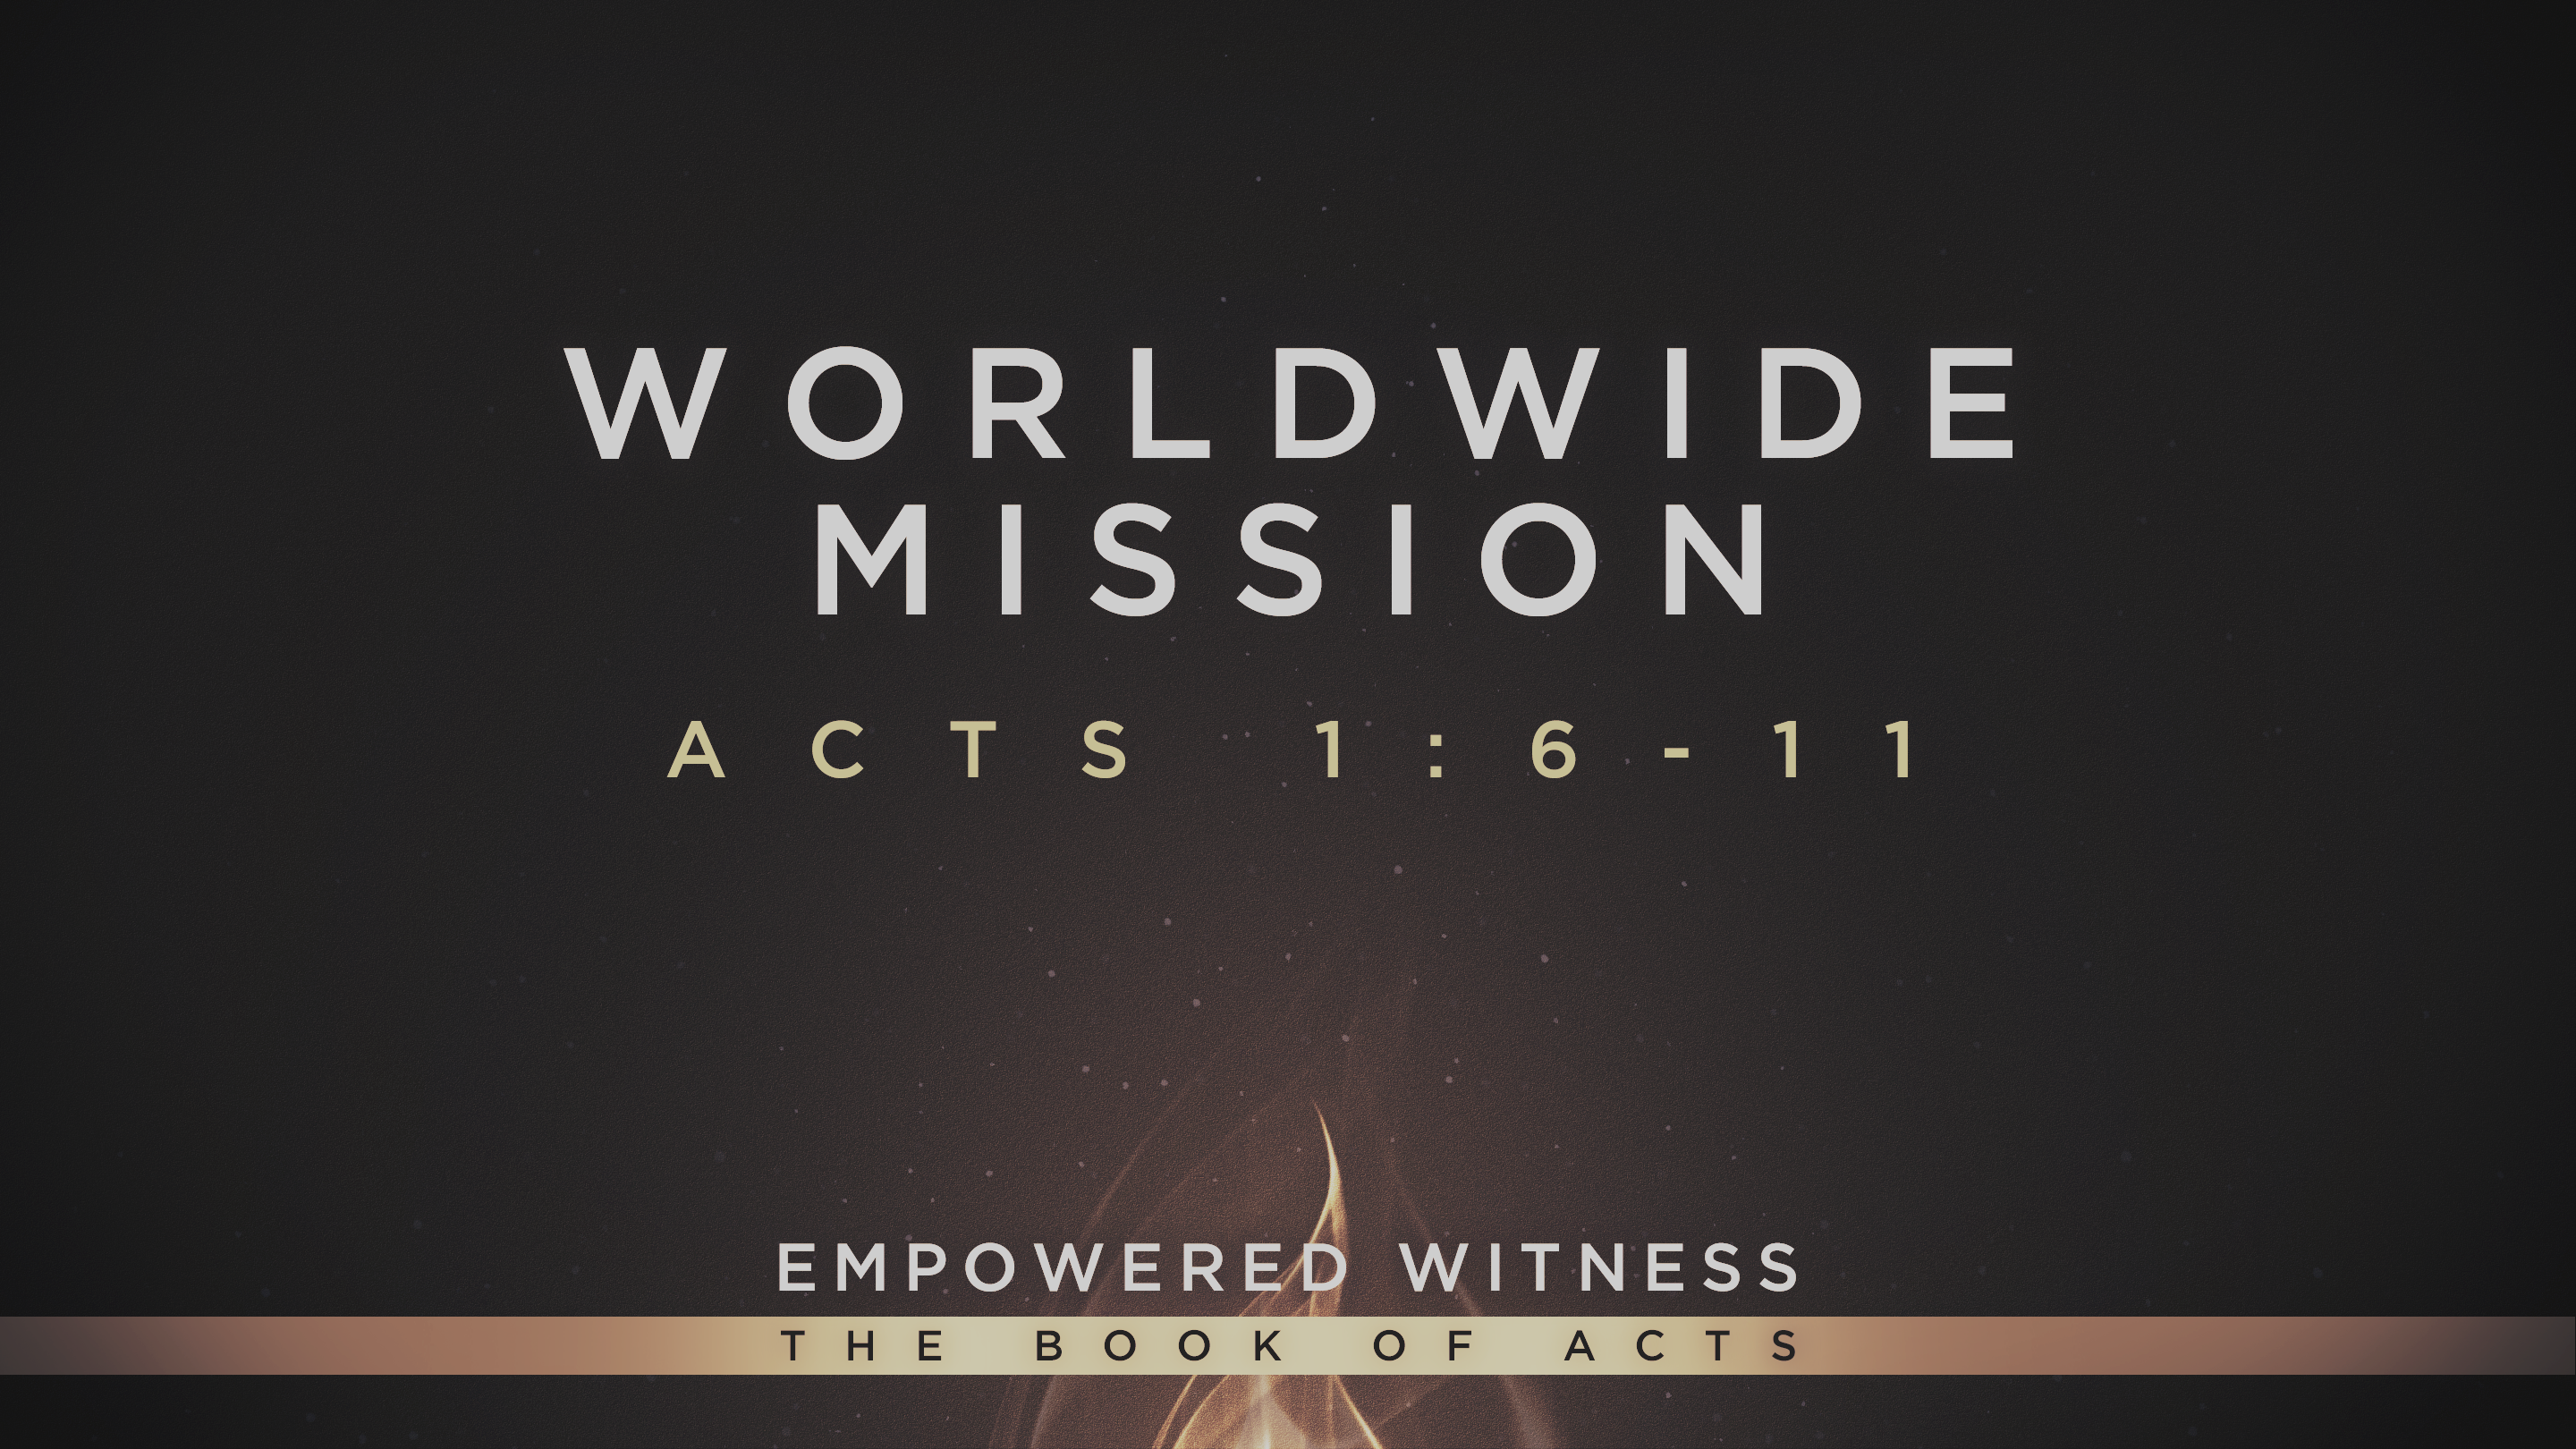 Worldwide Mission